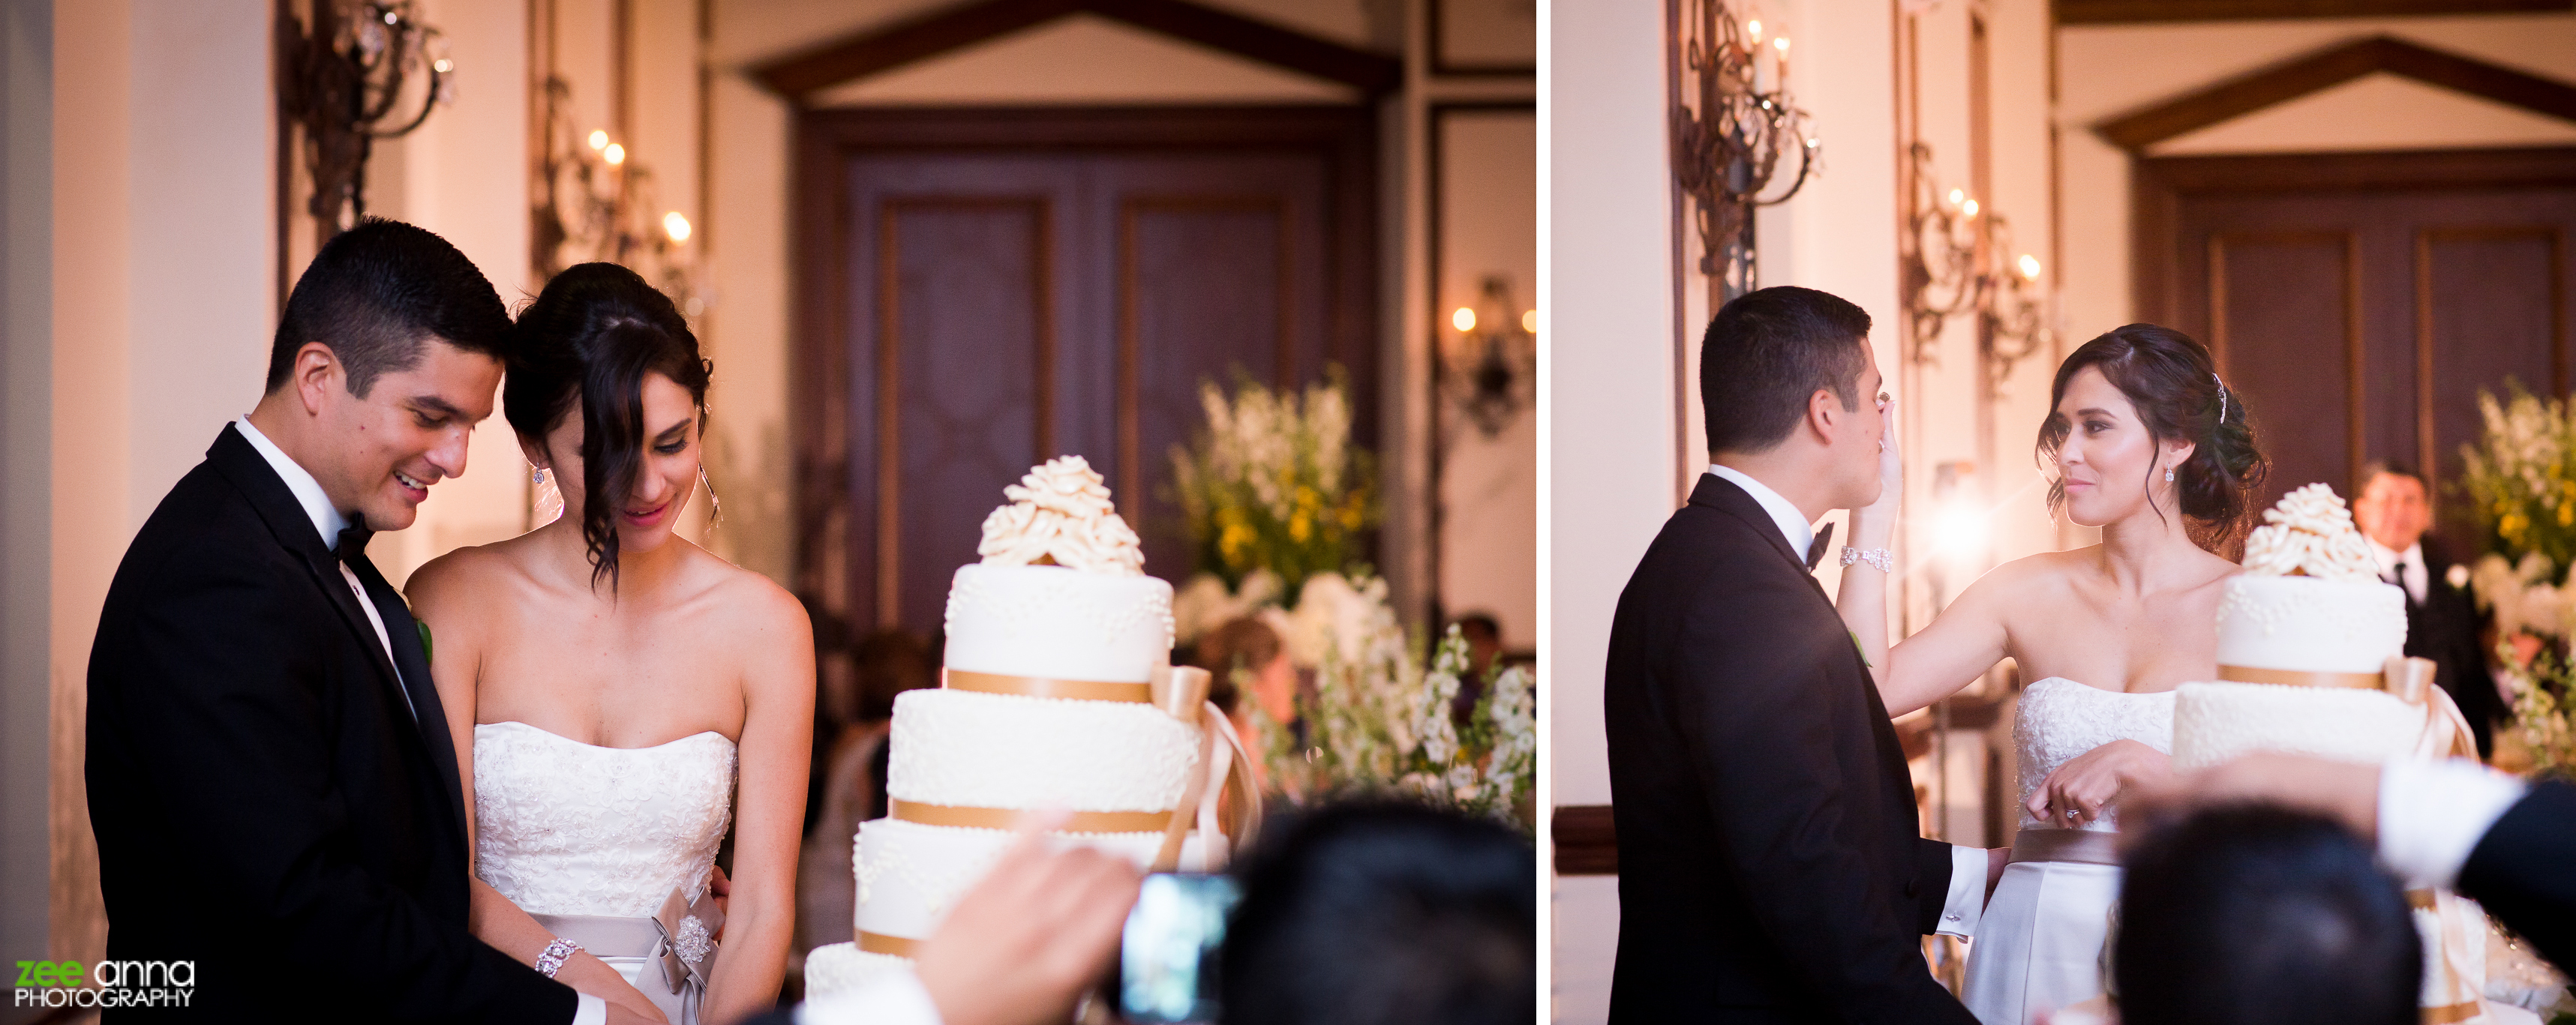 Blog-GrandezzaWedding-Rob+Laurie-49